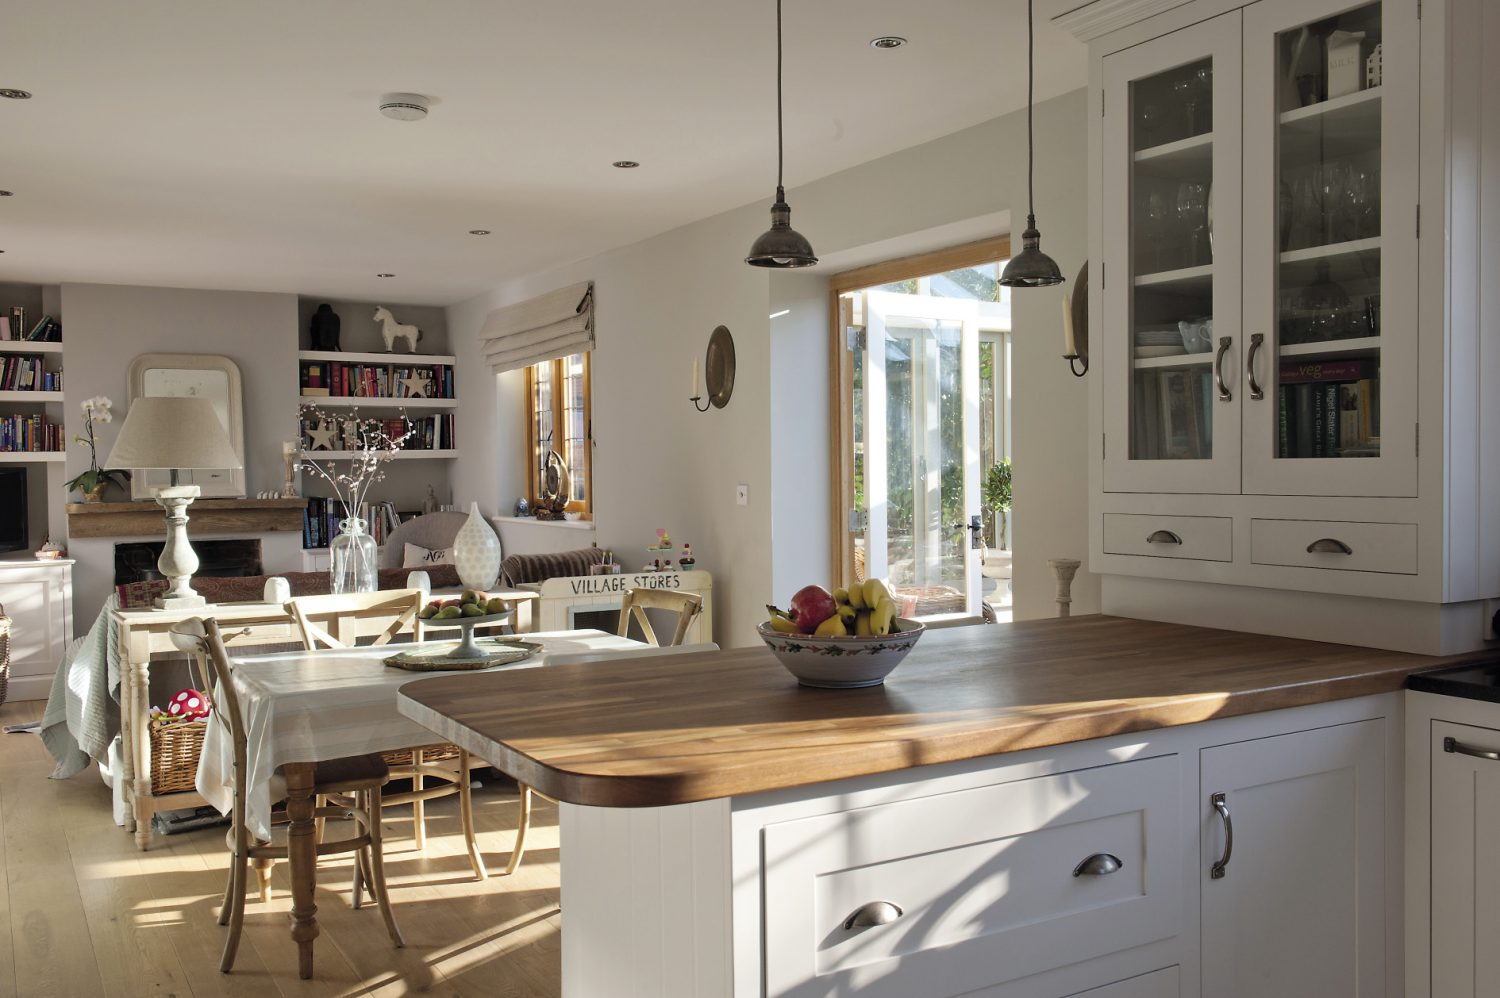 """The kitchen features iroko worktops and factory-esque metal pendant lights """"I love to mix period industrial, commercial and home pieces,"""" says Victoria. """"It's often surprising just how well they go together."""""""